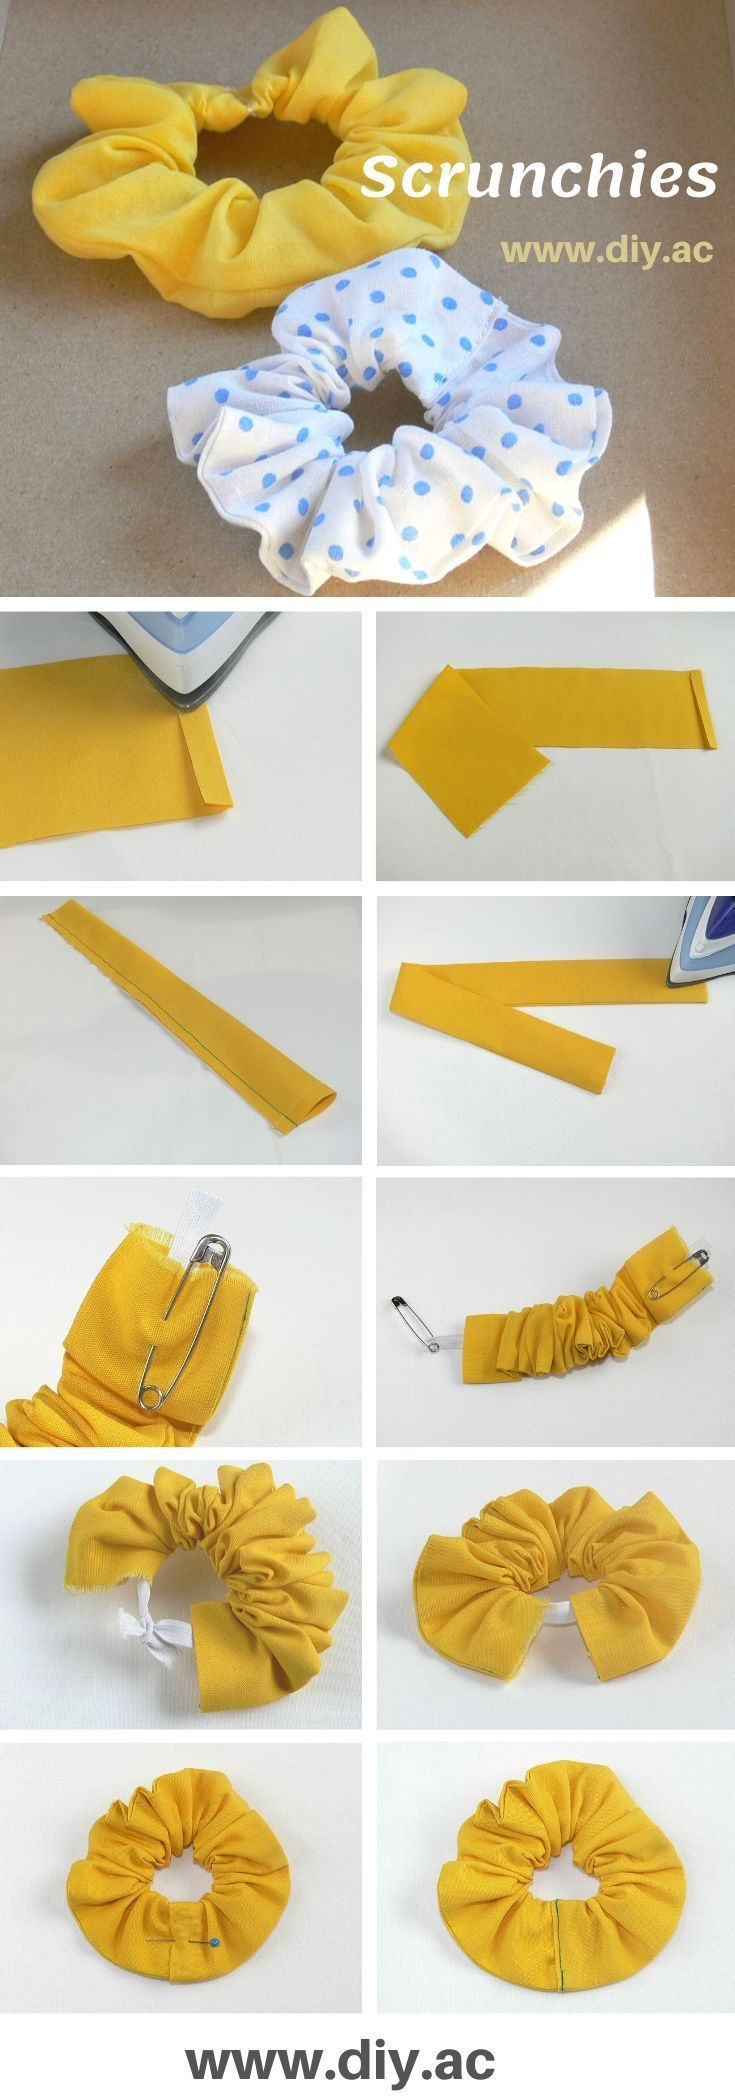 Photo of How to make scrunchies step by step | DIY by Anna Craft